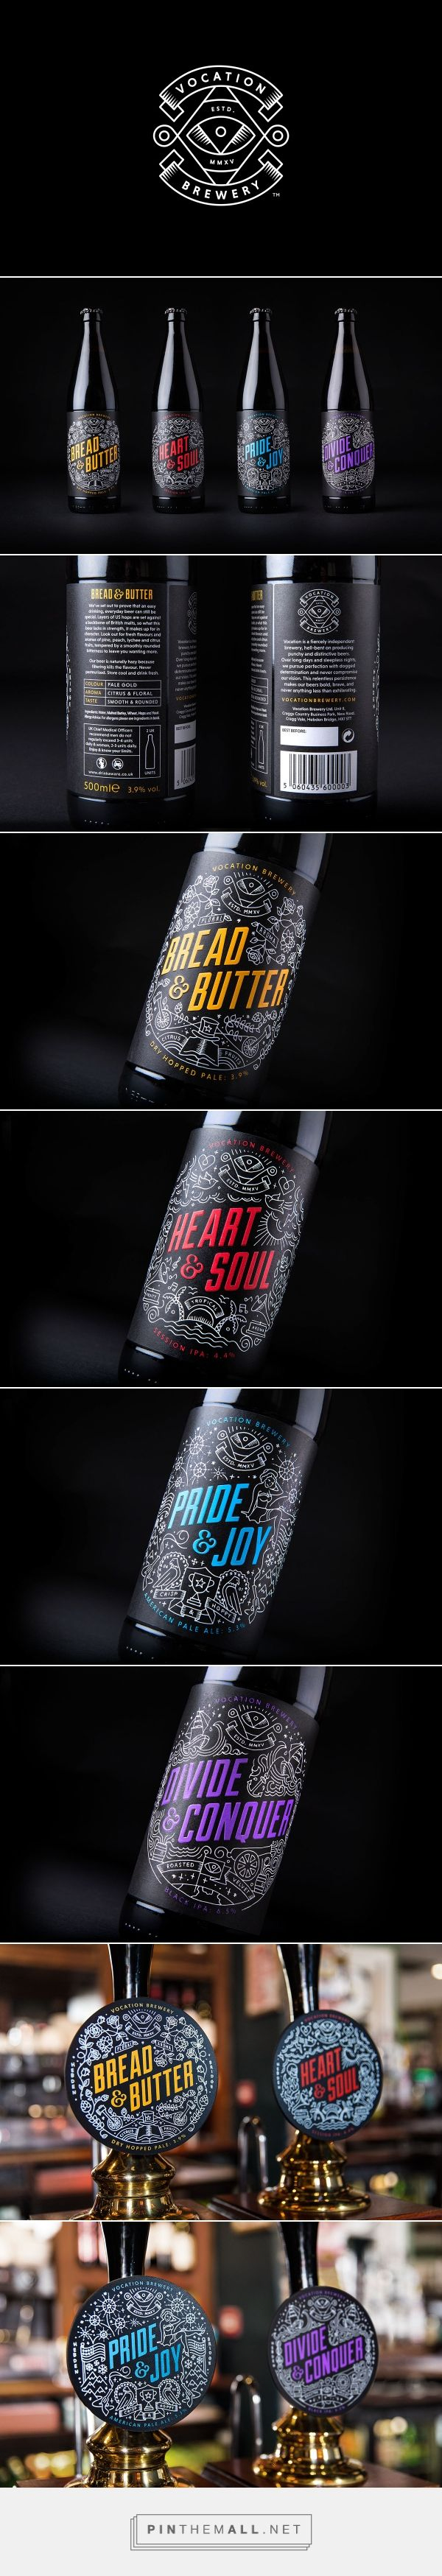 Vocation Brewery on Behance by Robot food curated by Packaging Diva PD. Love this fun colorful beer packaging.